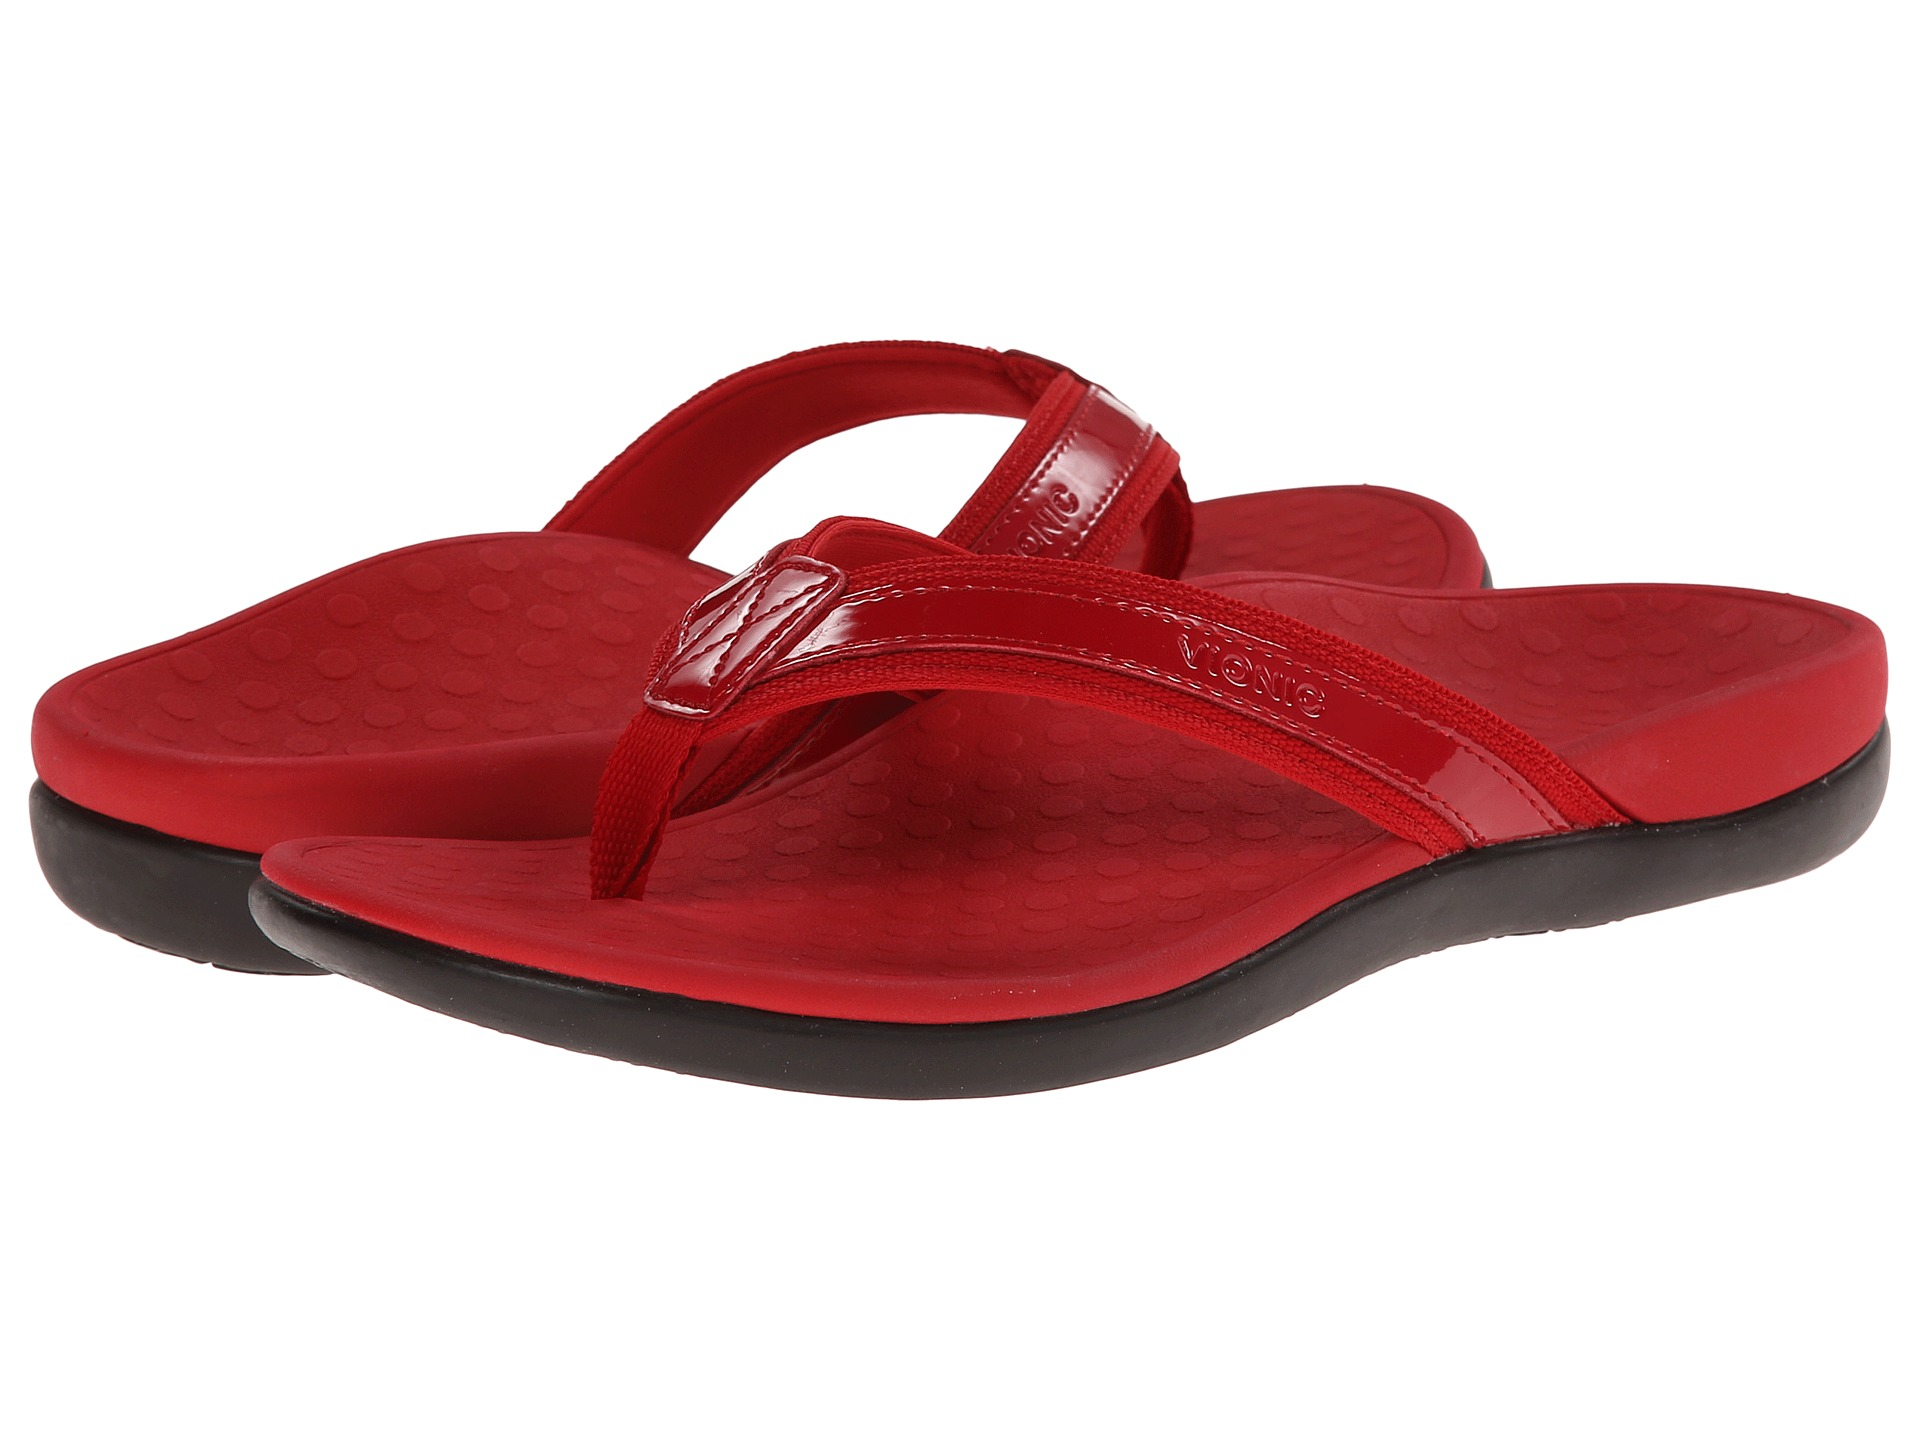 ce96b5897c60c7 Vionic with orthaheel technology tide ii red free jpg 1920x1440 Rutgers  slippers